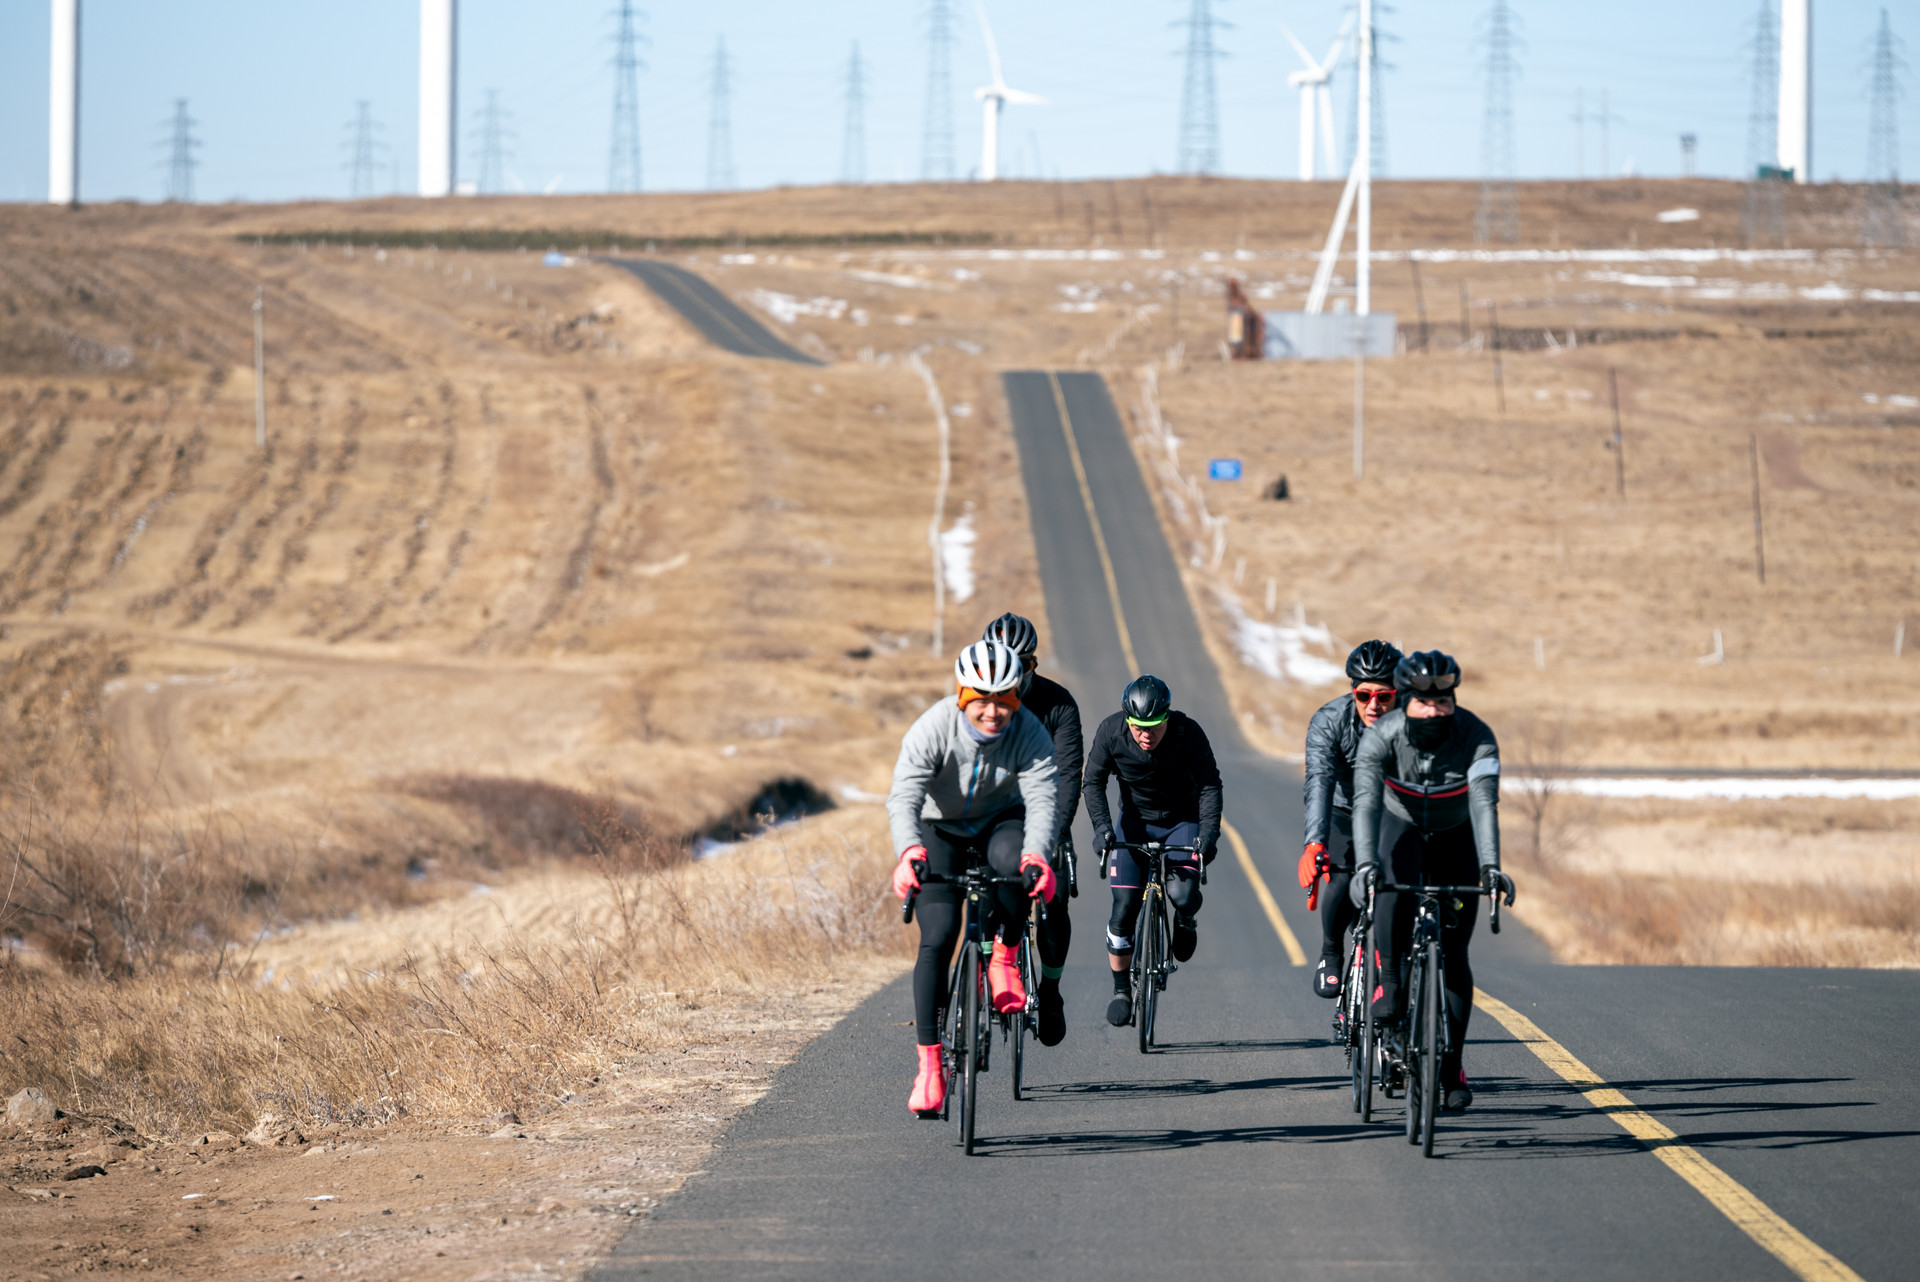 Asian Cyclists on a long road in Mongolia